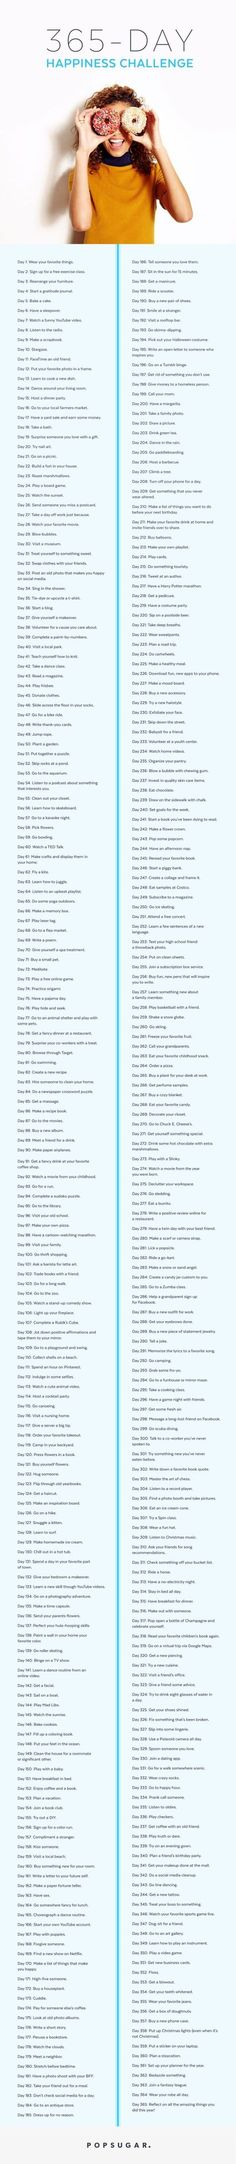 The most important thing in life, without a doubt, is to be happy. With that being said, don't overthink your happiness — remaining content is actually incredibly simple. We created a 365-day challenge that will make you more cheerful than you've ever been.